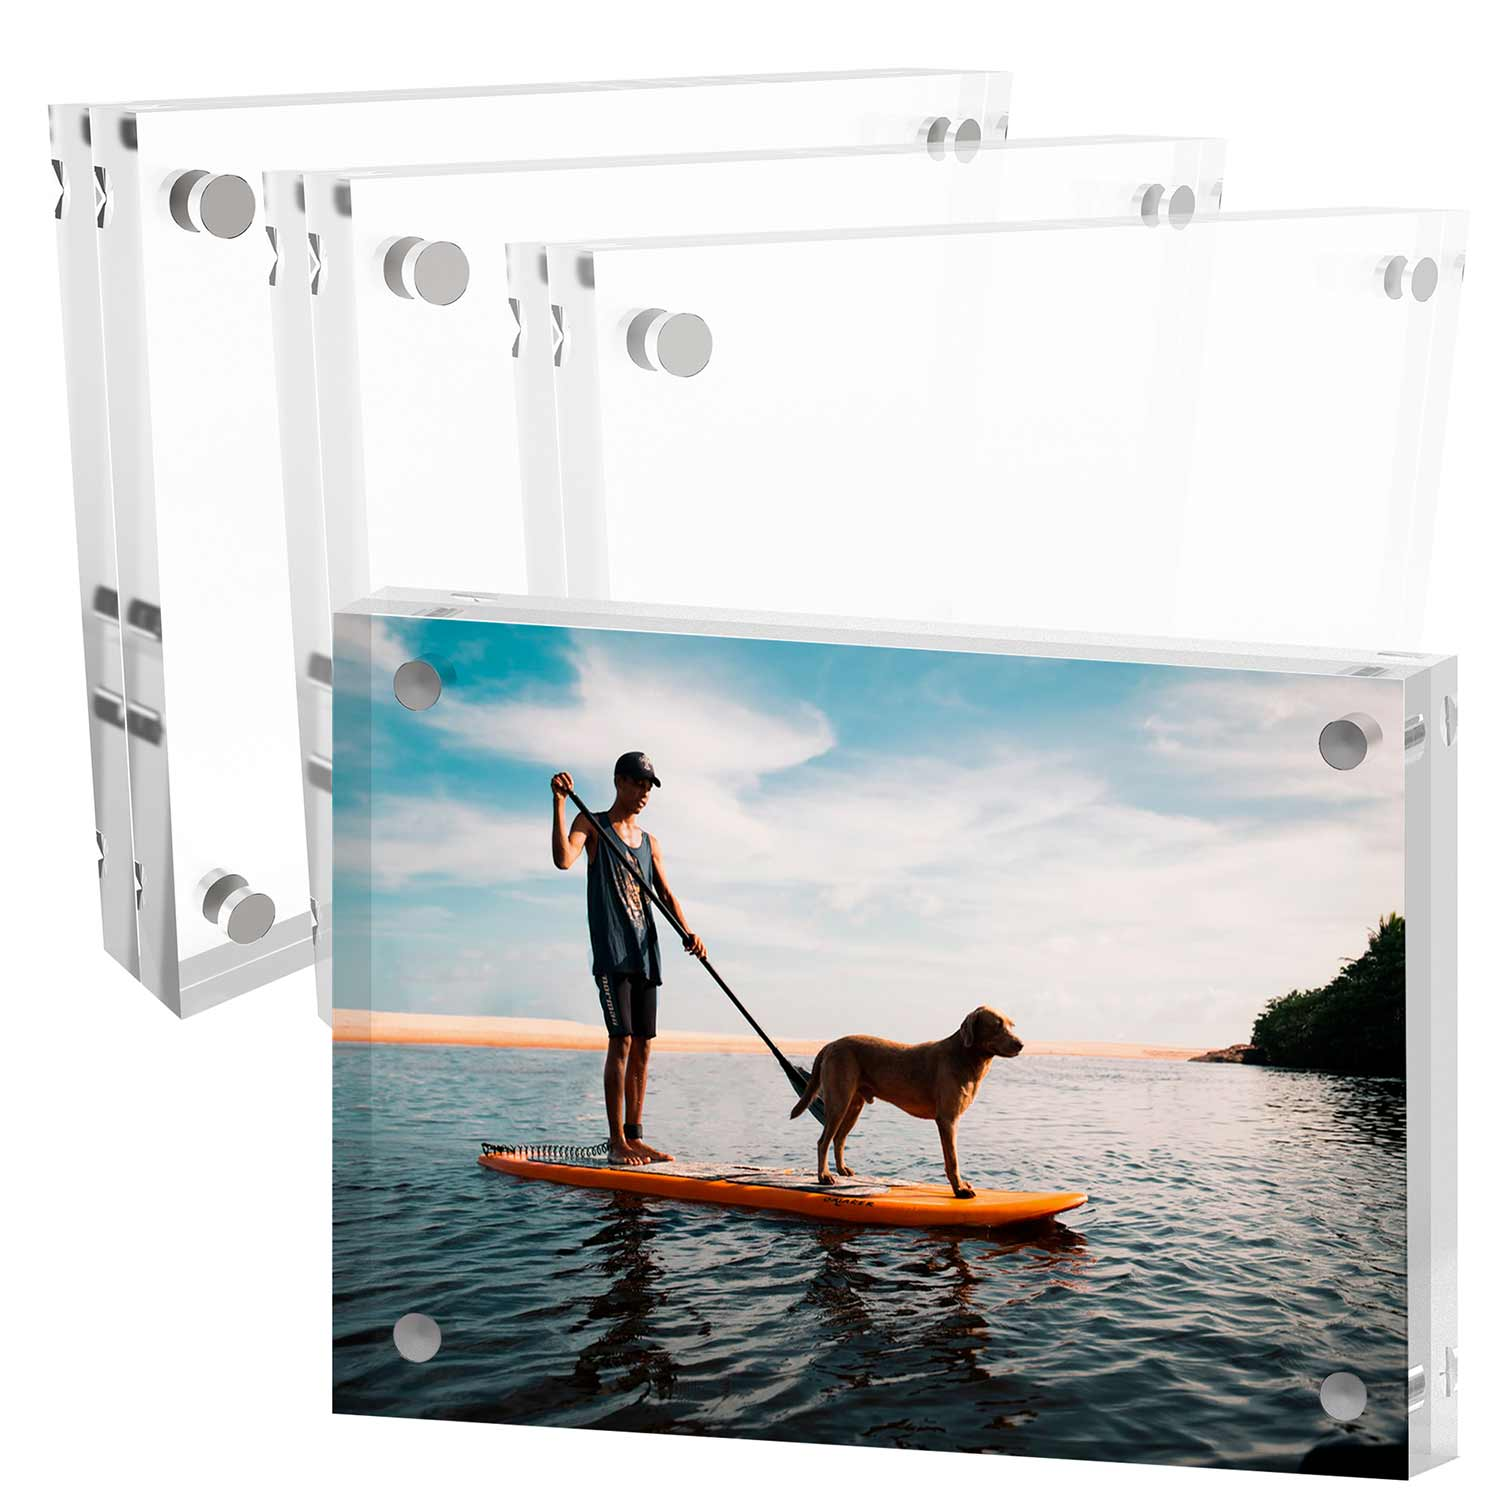 Mammoth 8 10 Inches Aaa Grade Acrylic Picture Frame Thick And Heavy Frameless Block Display 3 Pack Mammoth,Beautiful Bedding For Master Bedroom